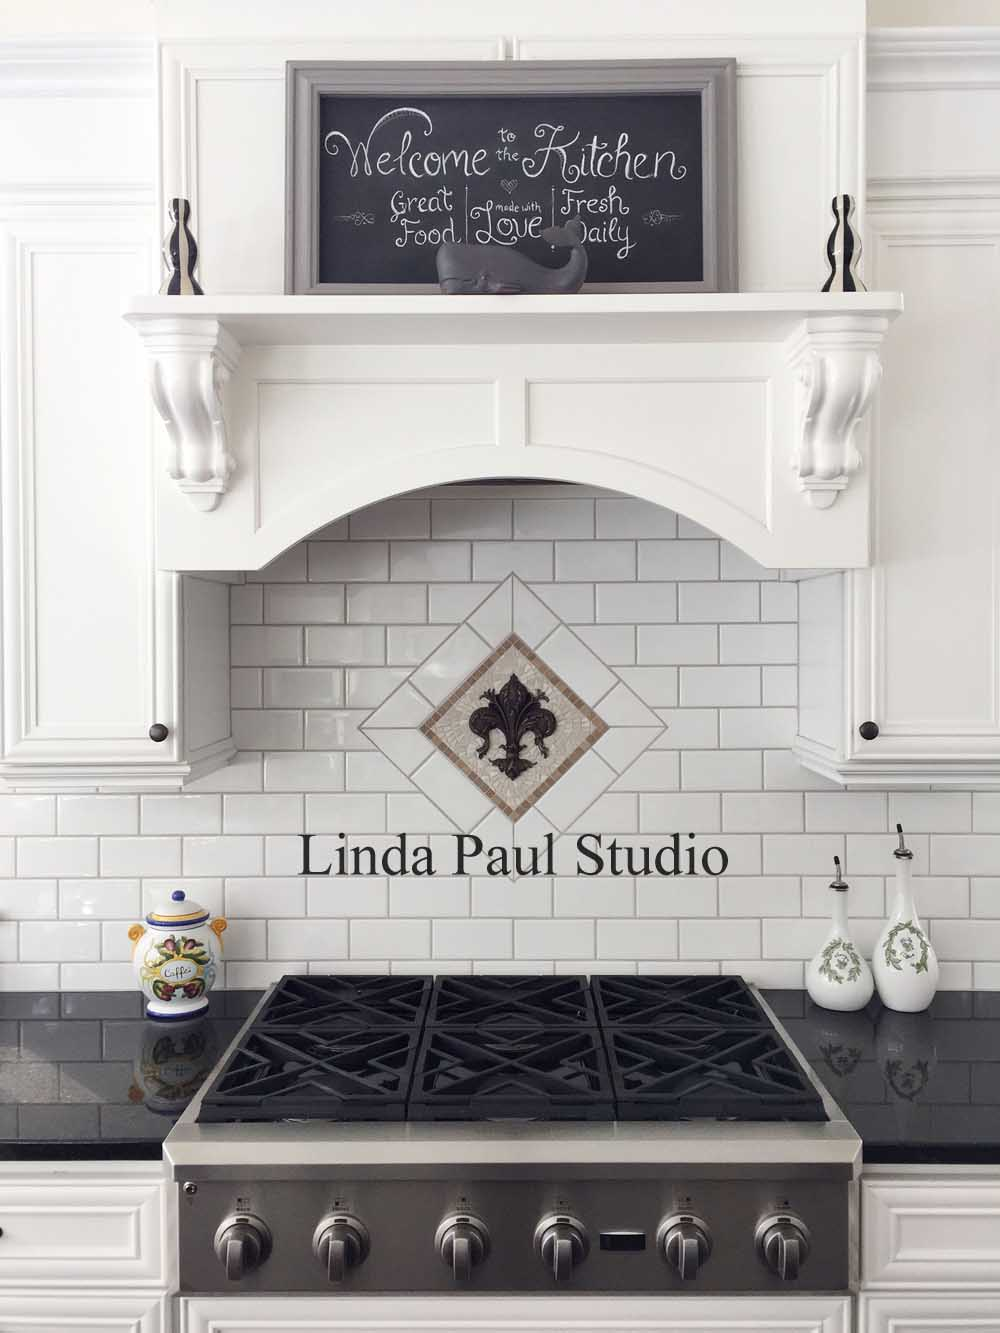 Kitchen backsplash ideas, pictures and installations